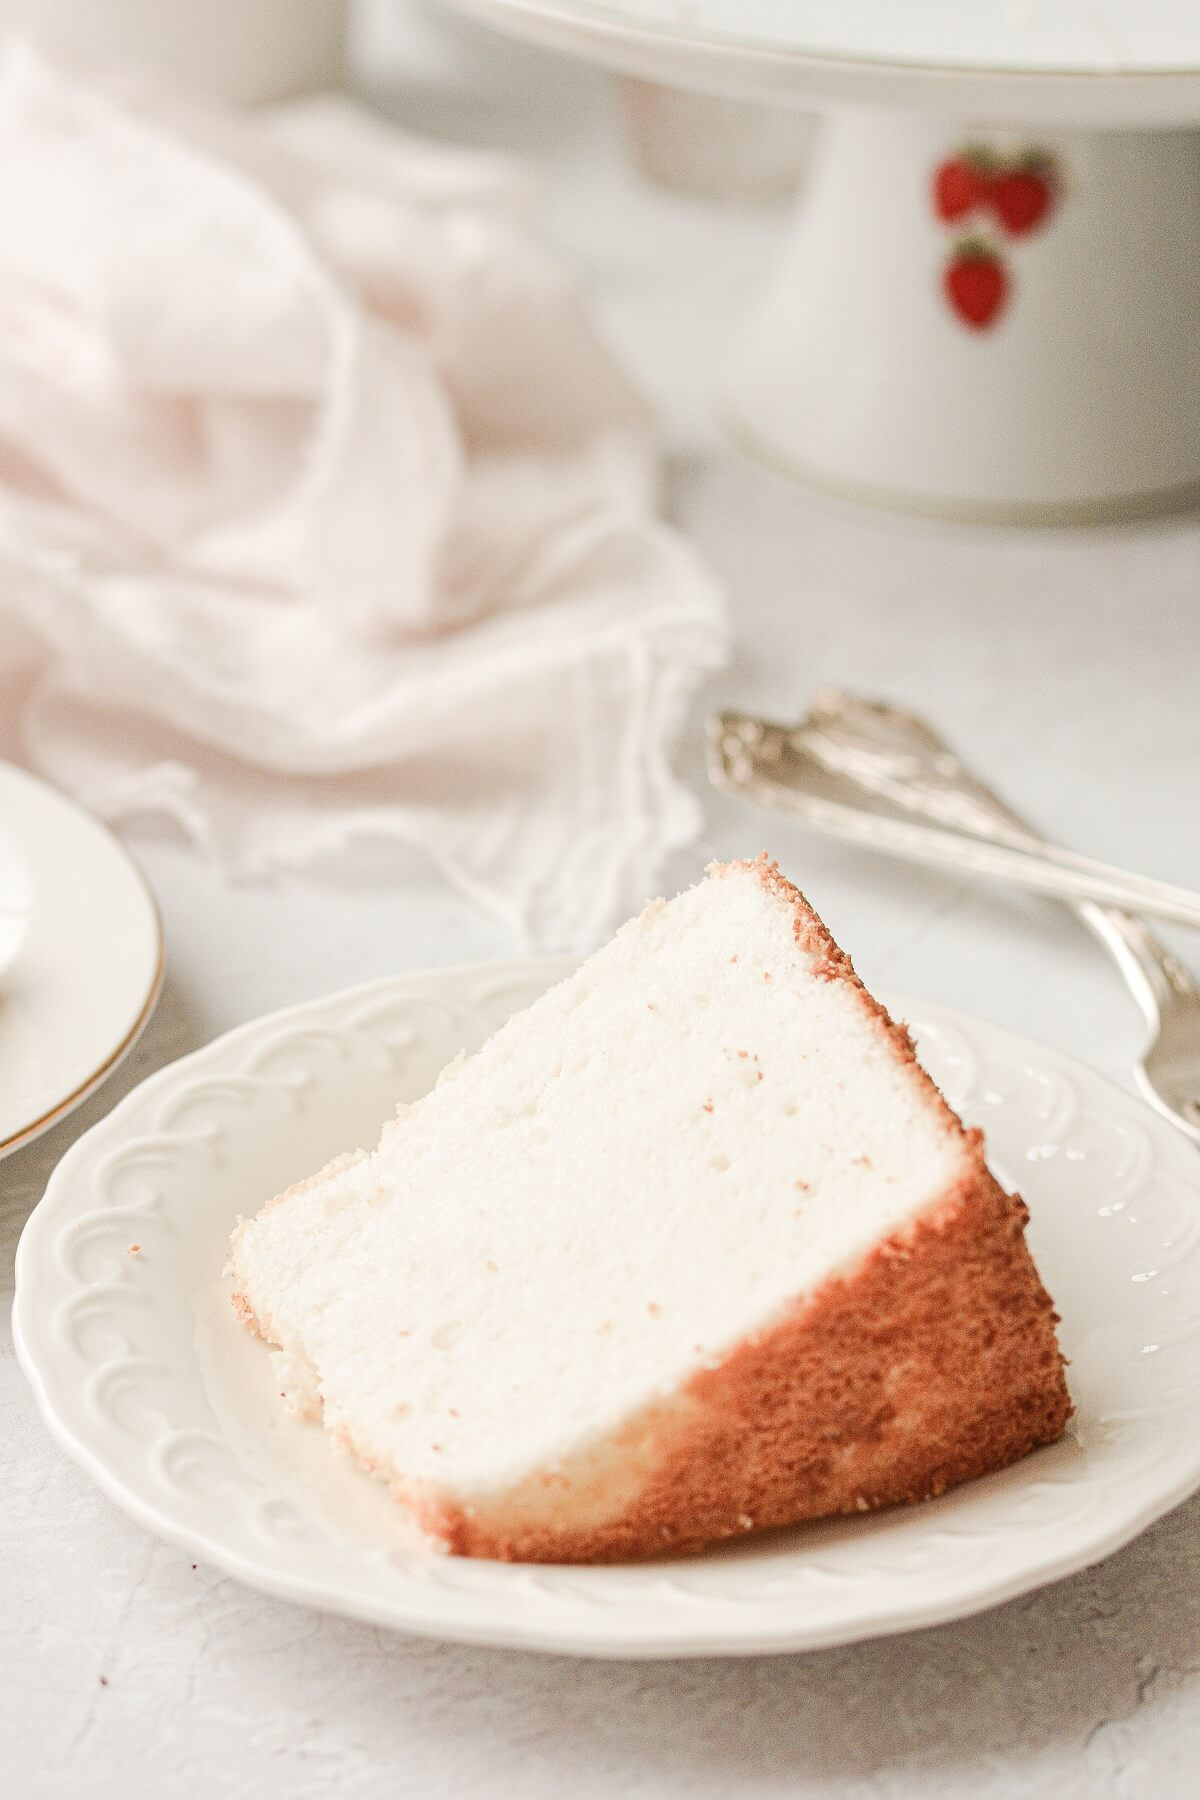 A slice of angel food cake on a white plate.